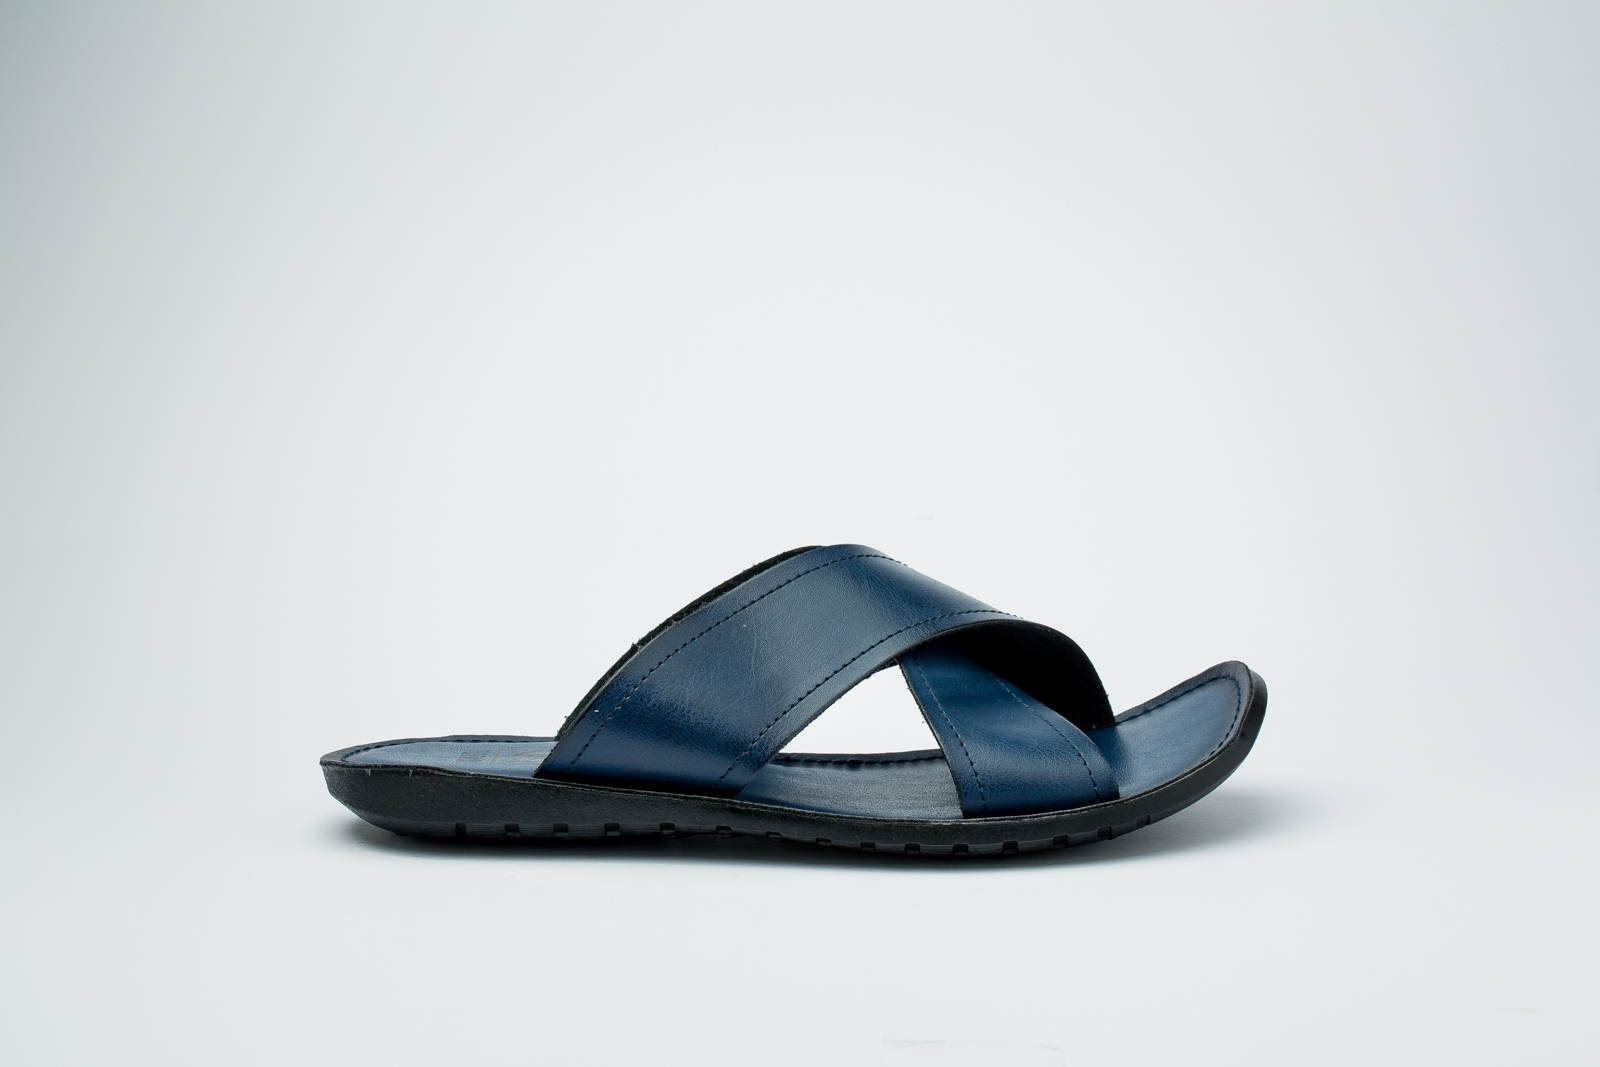 Picture of Blue Slipper